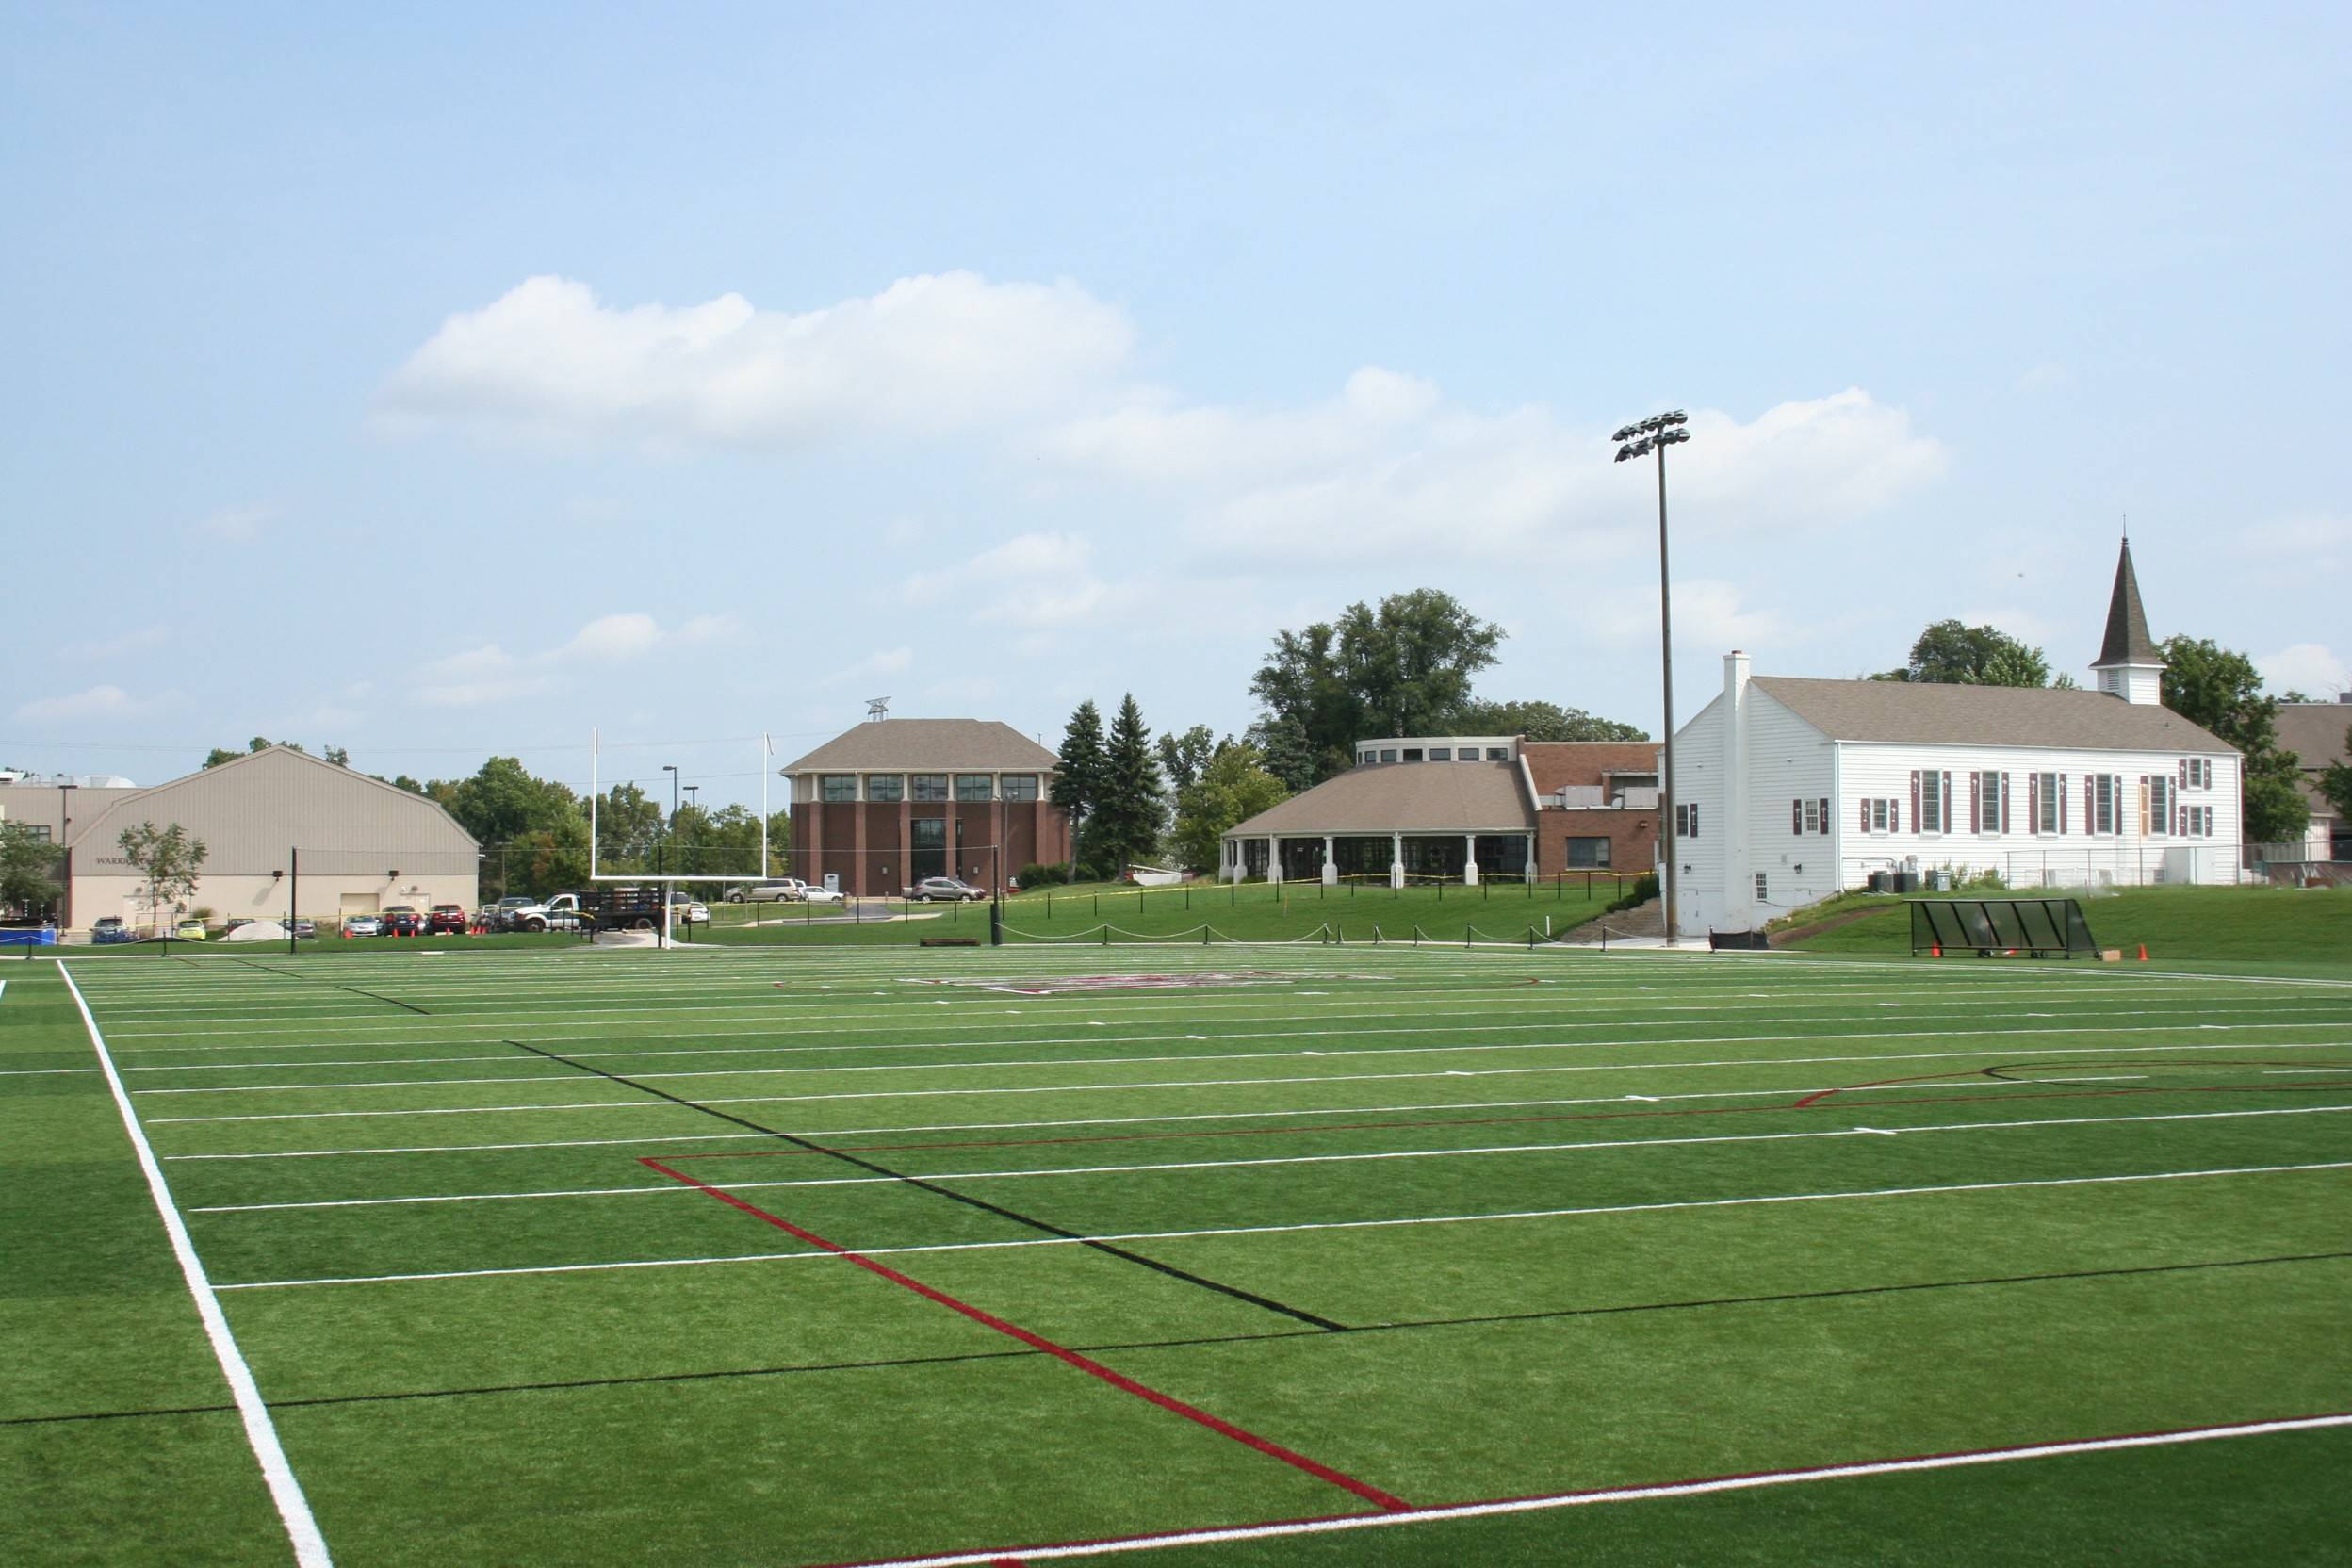 The football field at Wheaton Academy